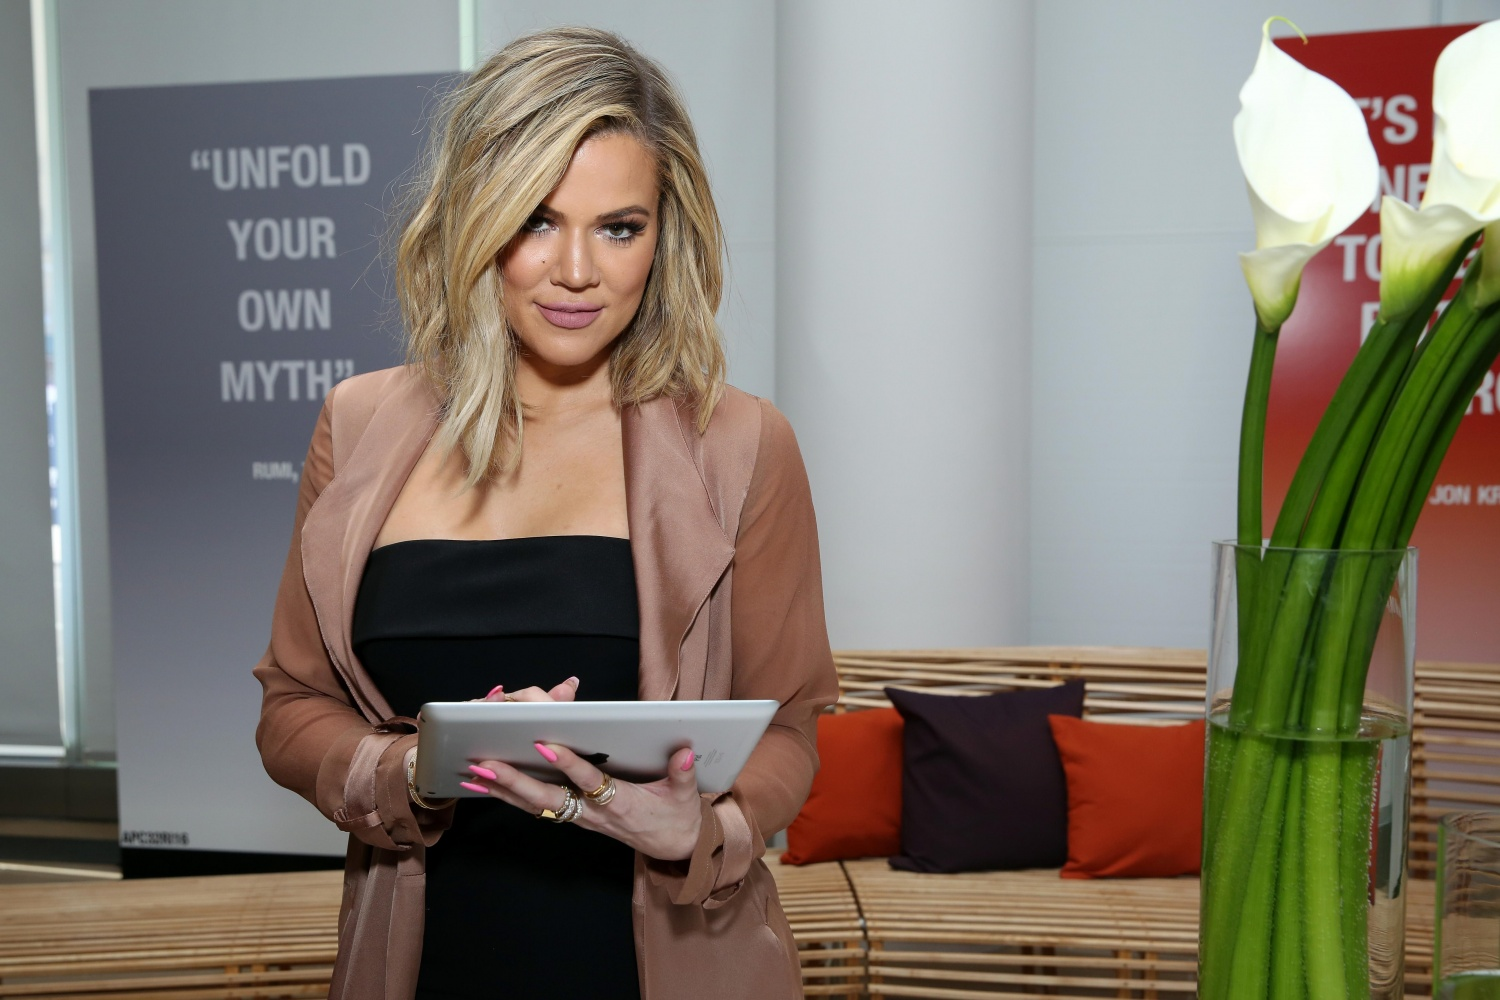 Khloe Kardashian gives birth to baby girl